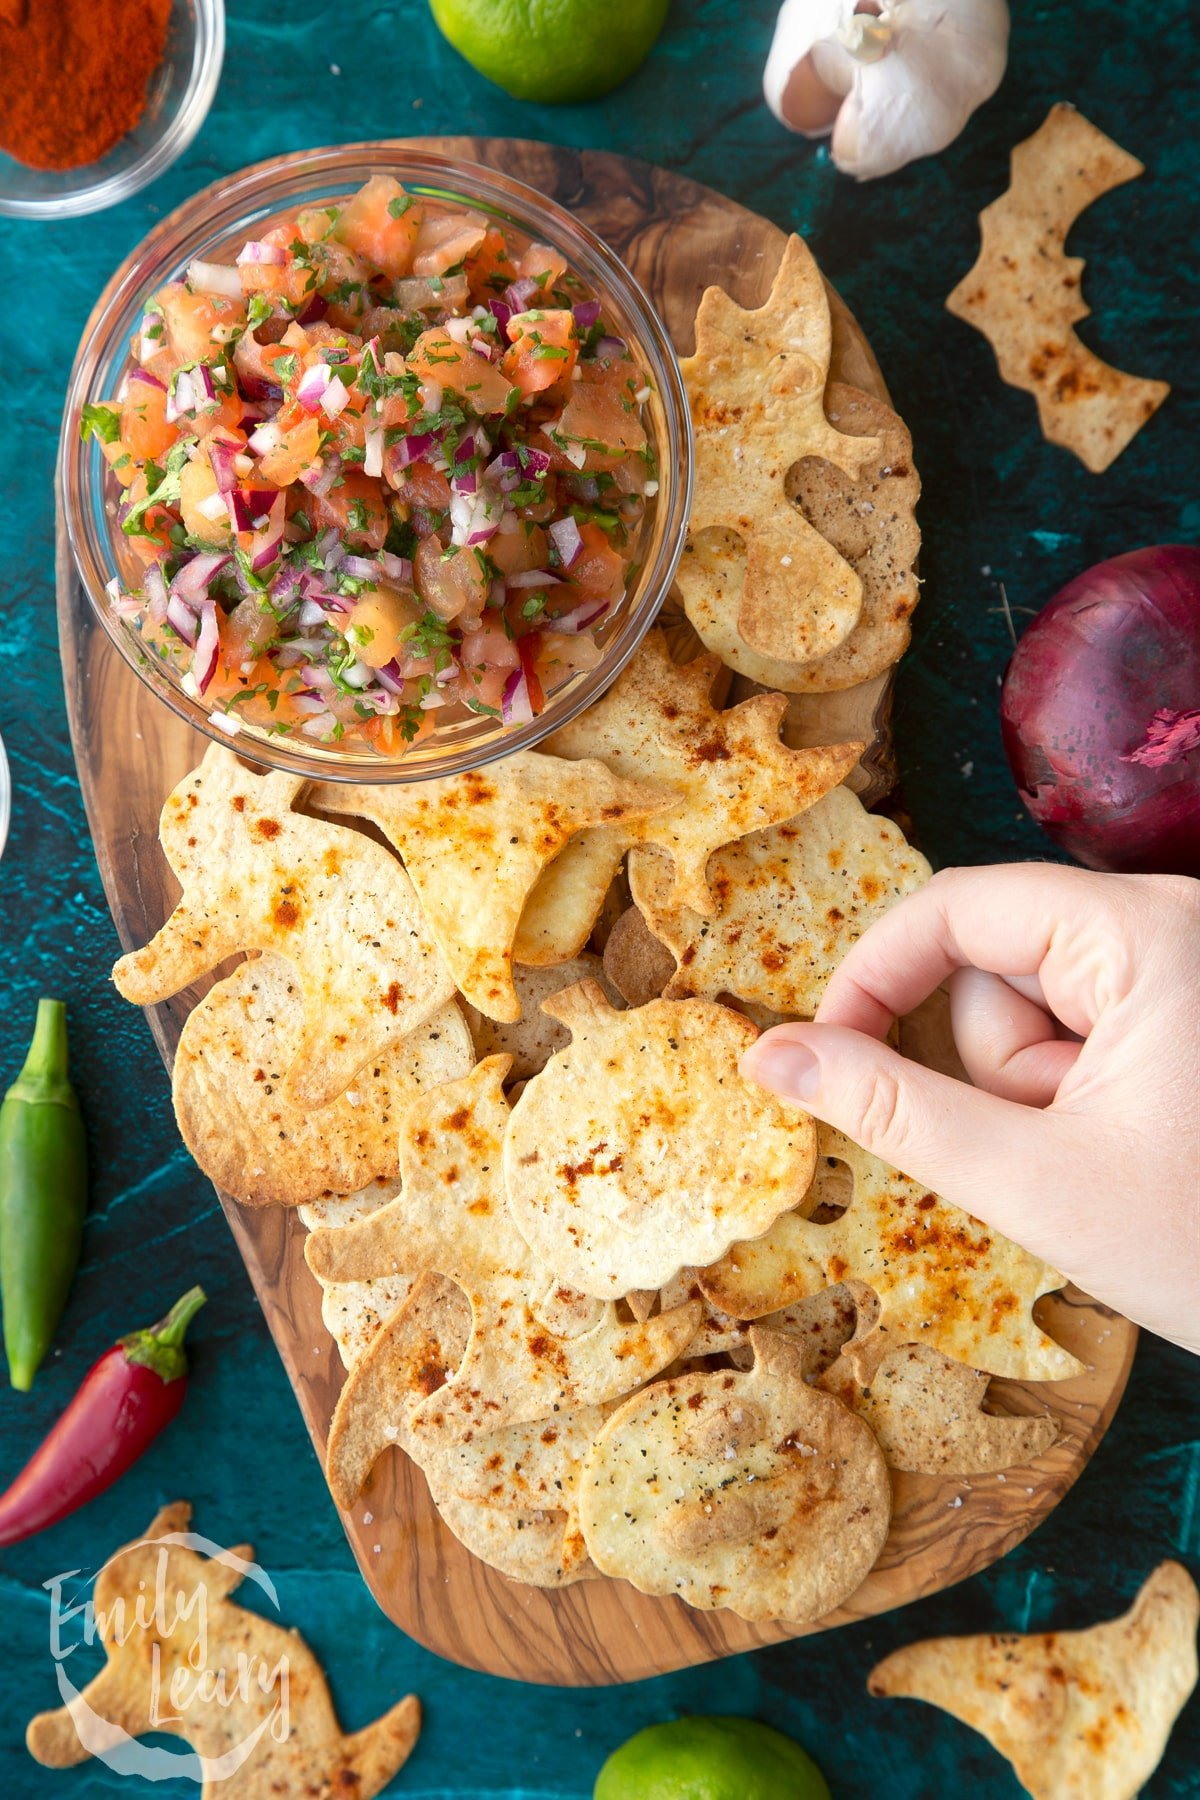 Halloween tortillas on a board with a small bowl of tomato salsa. A hand holds a pumpkin shaped chip.